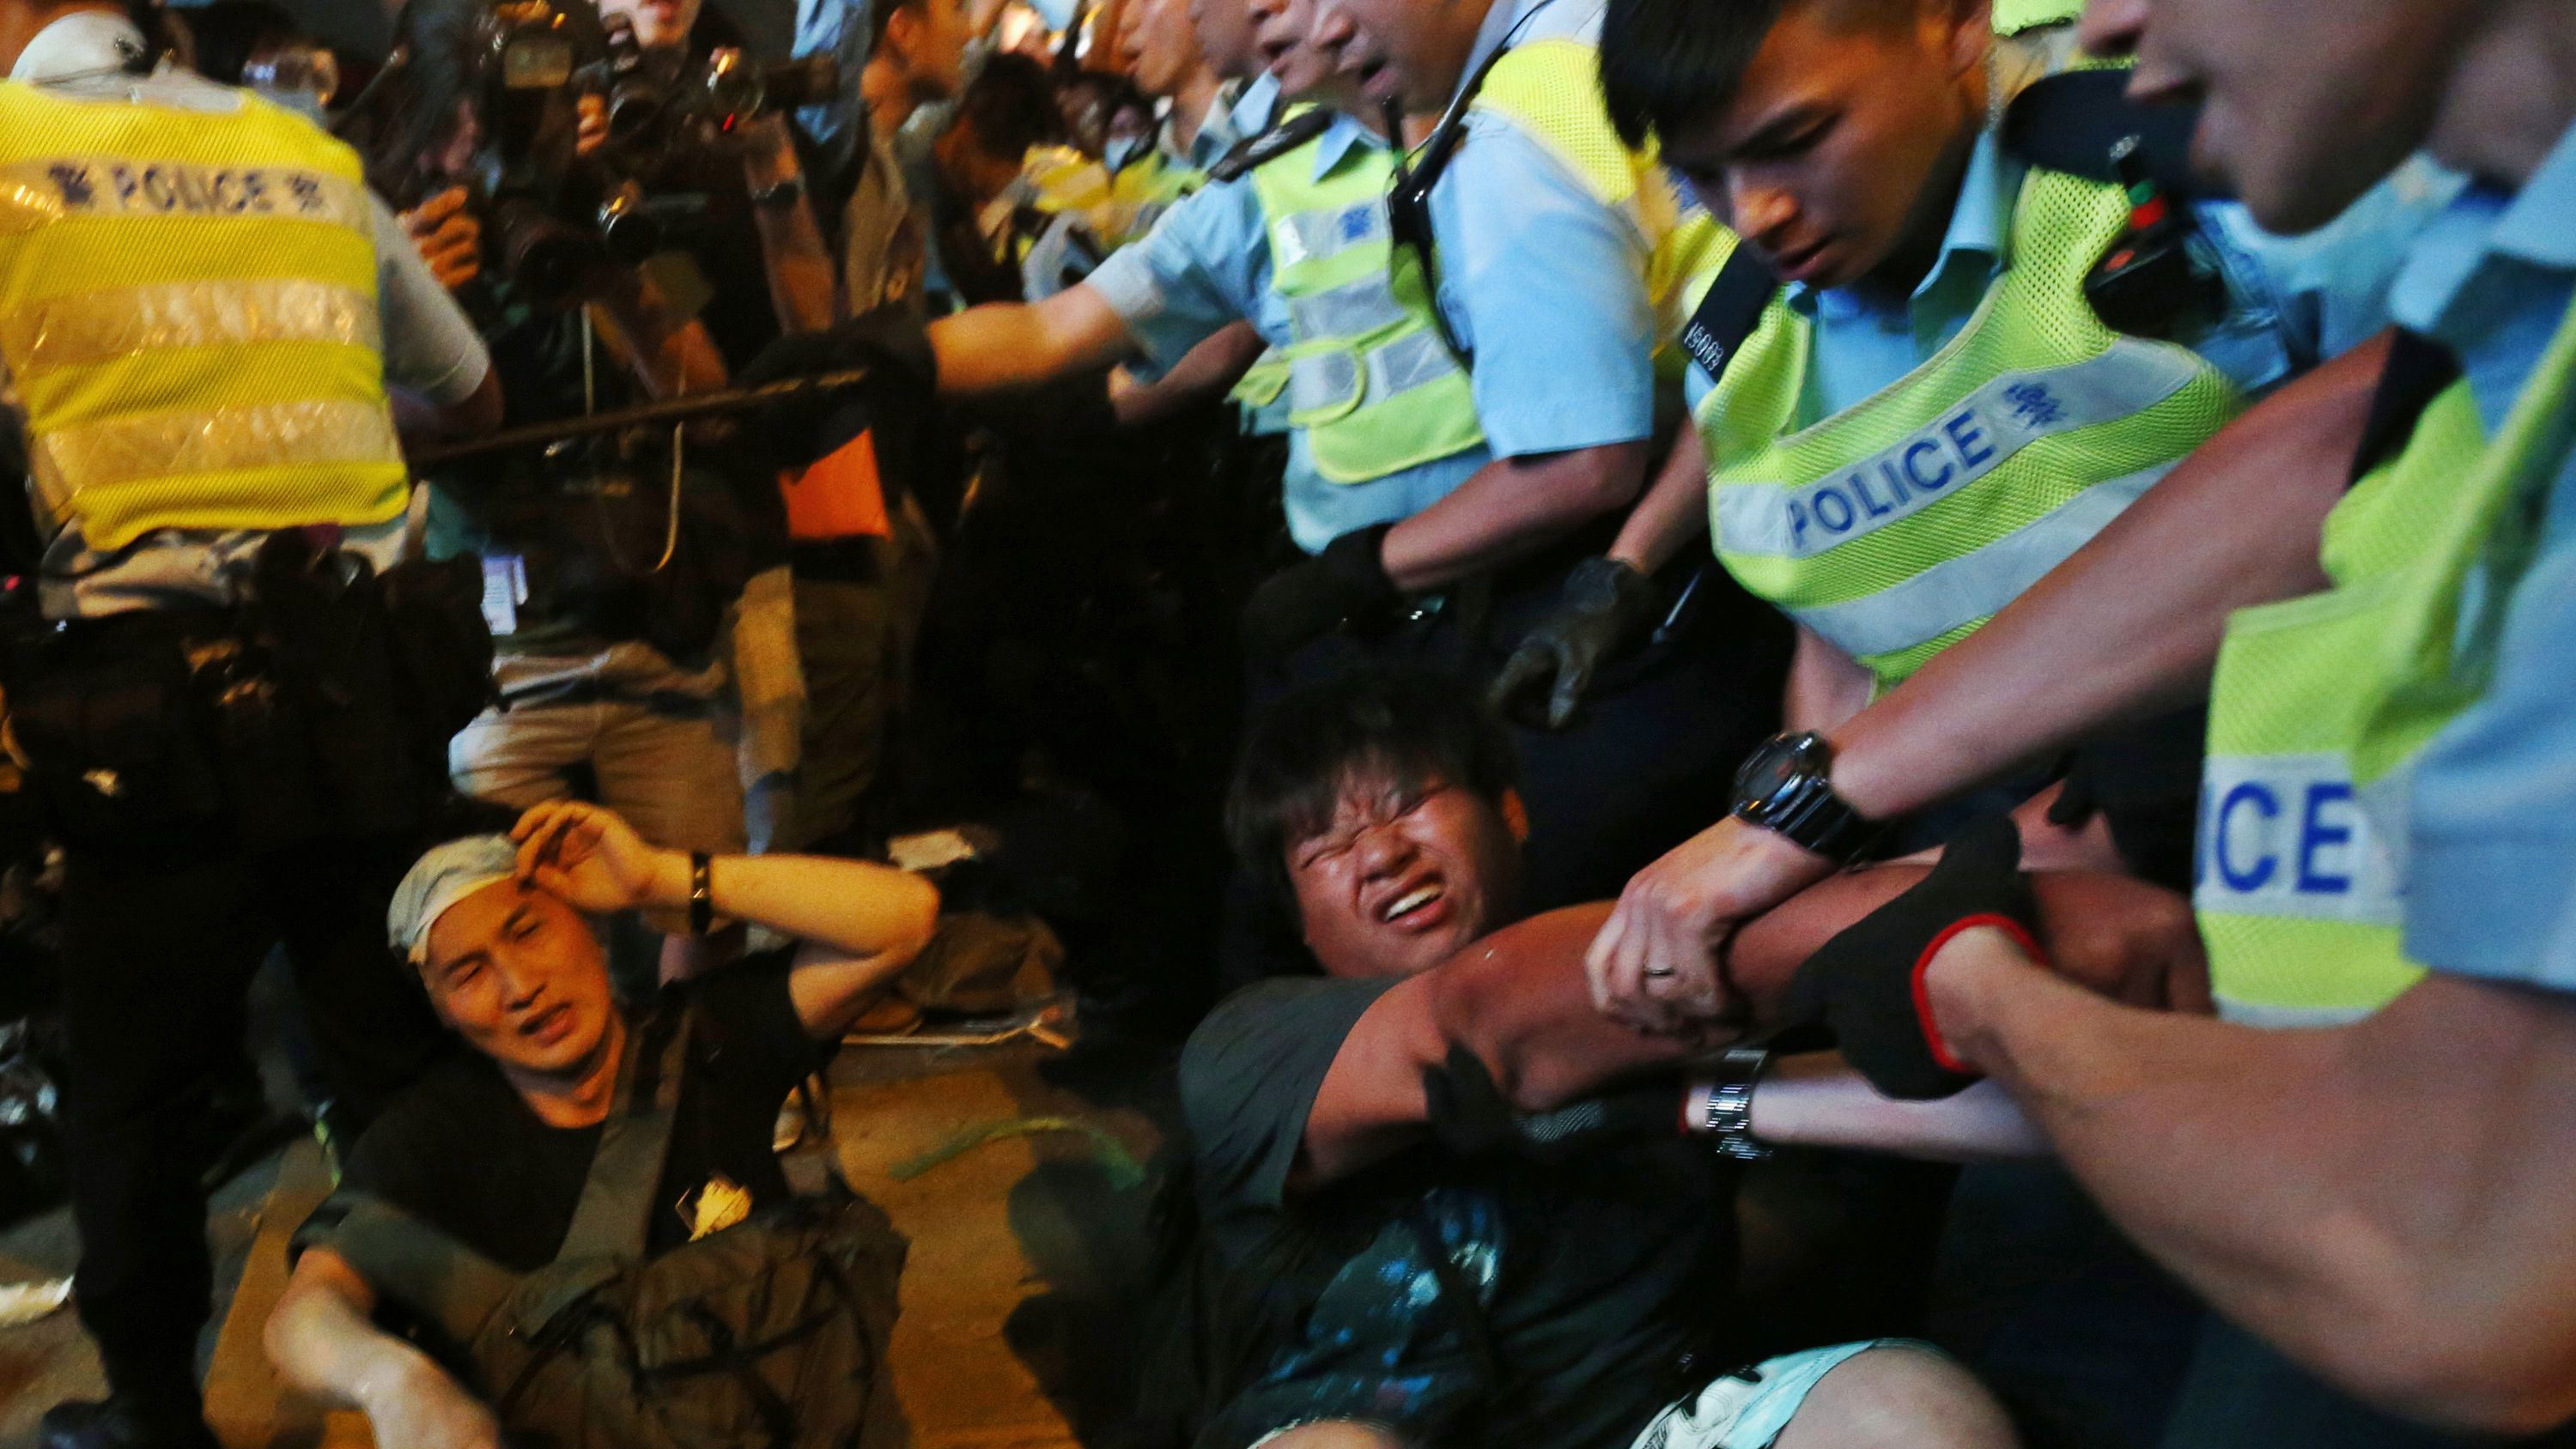 Protesters are dragged away by riot police during a confrontation at Mongkok shopping district in Hong Kong October 17, 2014. Hong Kong riot police used pepper spray and baton charged crowds of pro-democracy protesters on Friday evening as tension escalated after a pre-dawn clearance of a major protest zone in the Chinese-controlled financial hub. REUTERS/Bobby Yip